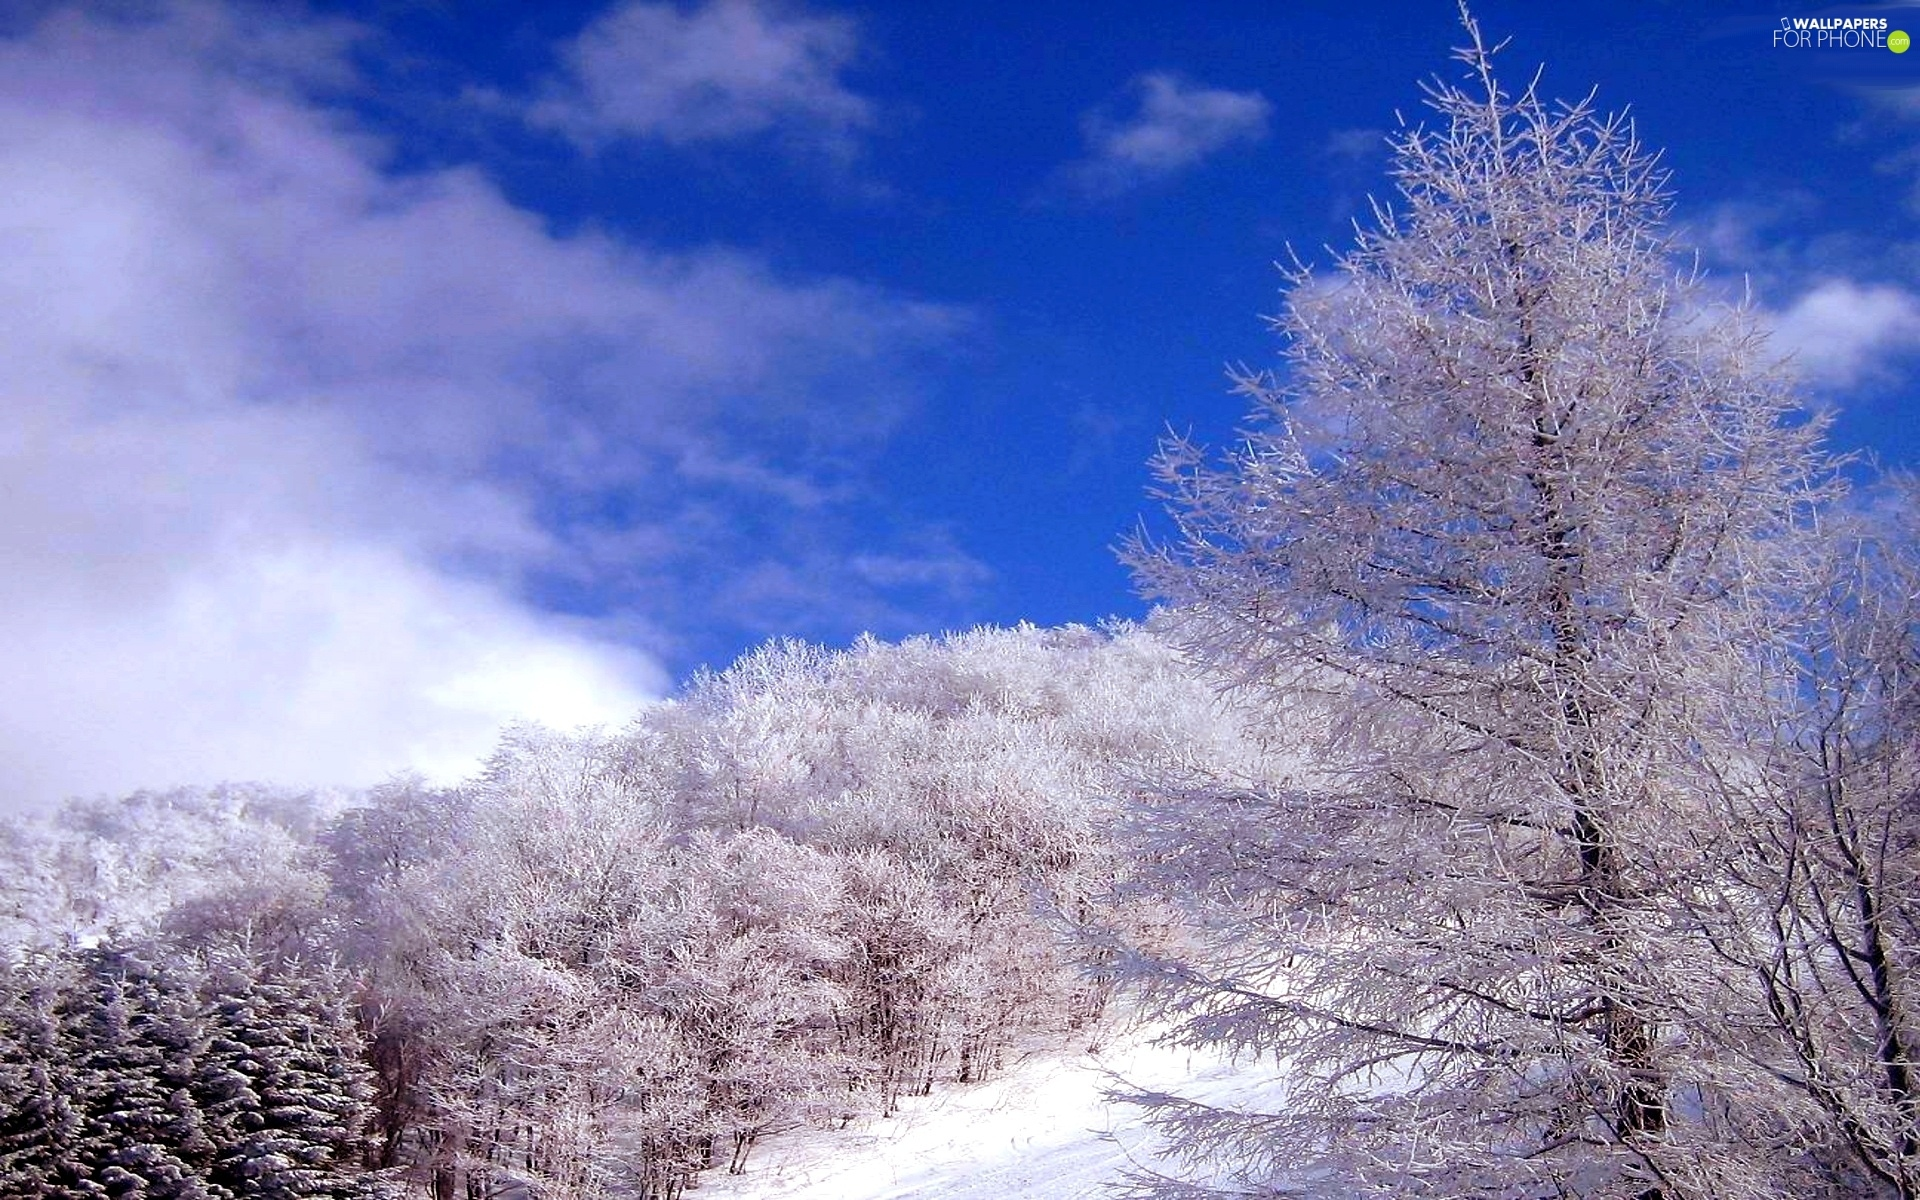 snow, winter, trees, viewes, Sky